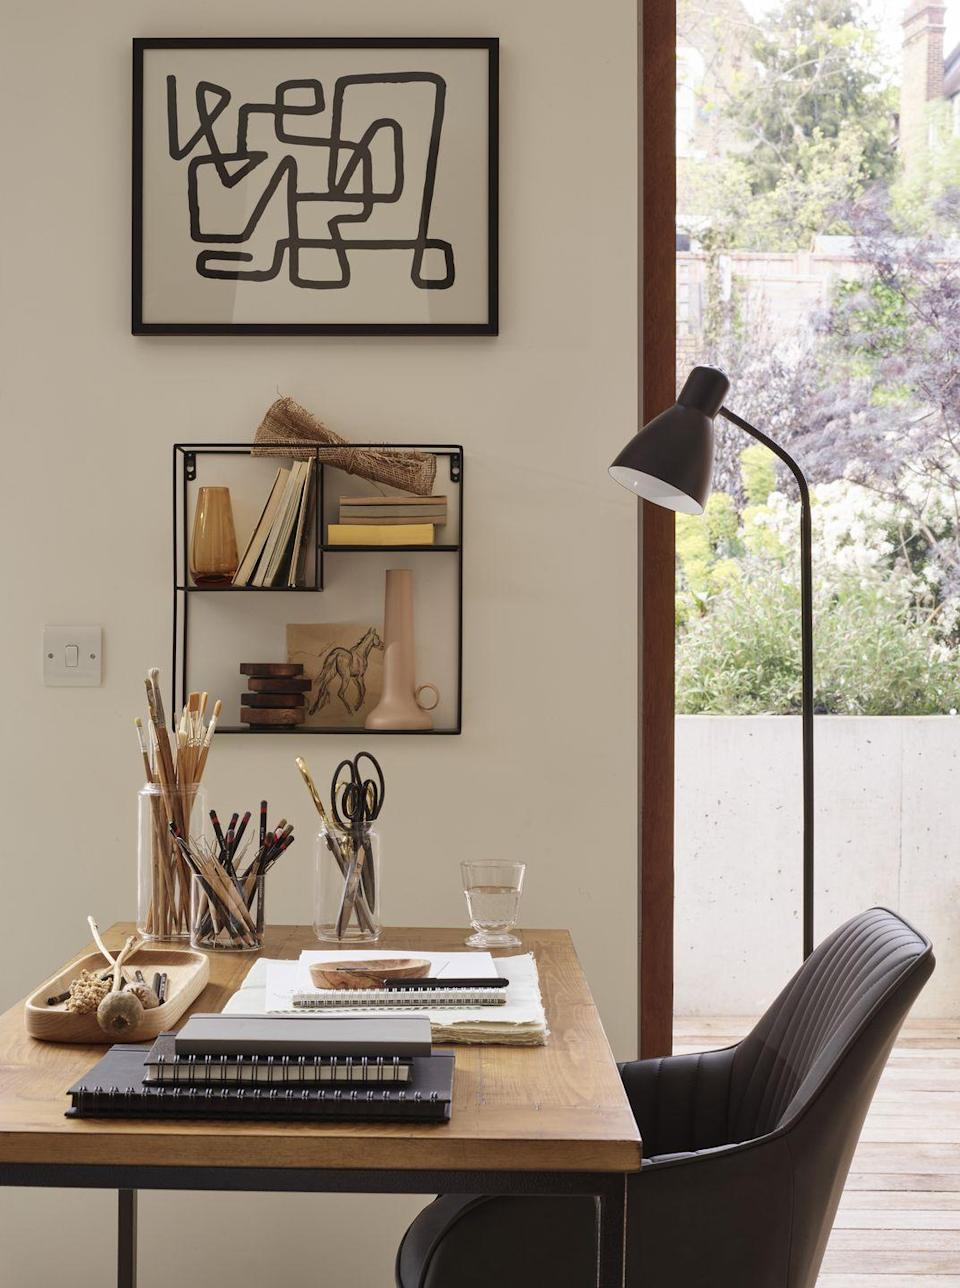 """<p>With remote working here to stay, John Lewis is making it easier than ever to refresh your office space without breaking the bank. As part of their new ANYDAY brand drop, you'll find affordable desk lamps, chairs and gorgeous artwork, too. They're right at the top of our wish list...</p><p><strong>Follow House Beautiful on <a href=""""https://www.instagram.com/housebeautifuluk/"""" rel=""""nofollow noopener"""" target=""""_blank"""" data-ylk=""""slk:Instagram"""" class=""""link rapid-noclick-resp"""">Instagram</a>.</strong></p>"""